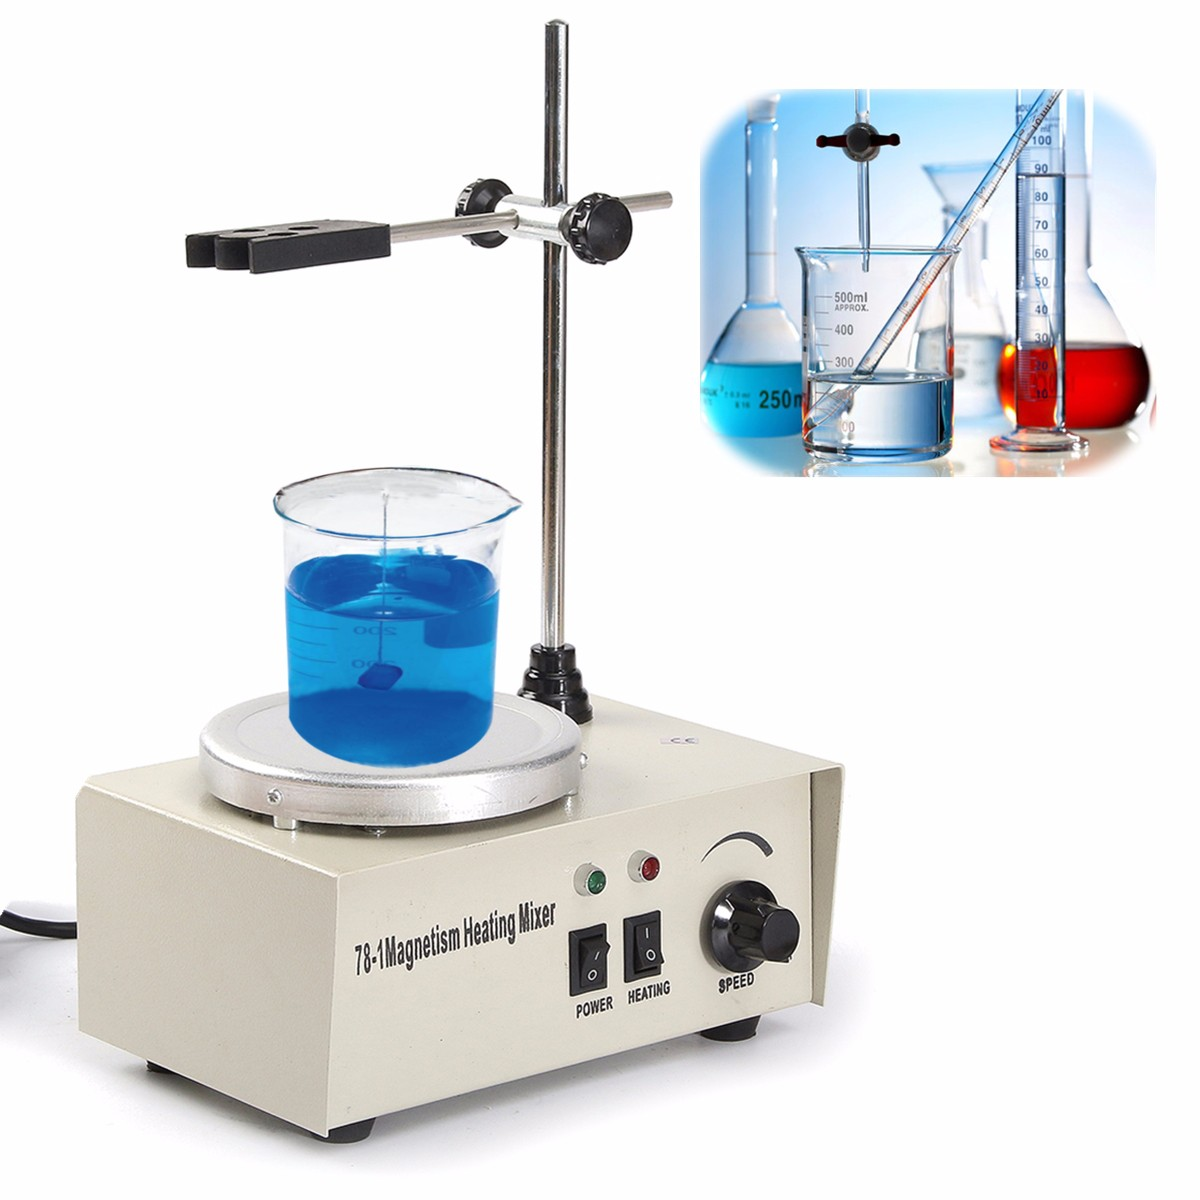 KiCute 1Set Laboratory Chemistry Magnetic Stirrer Magnetic Stirrer Home Laboratory Magnetic Mixer Stirrers Apparatus 220V 50HZ kicute new laboratory chemistry magnetic stirrer magnetic stirrer home laboratory magnetic mixer stirrers apparatus ac100 240v